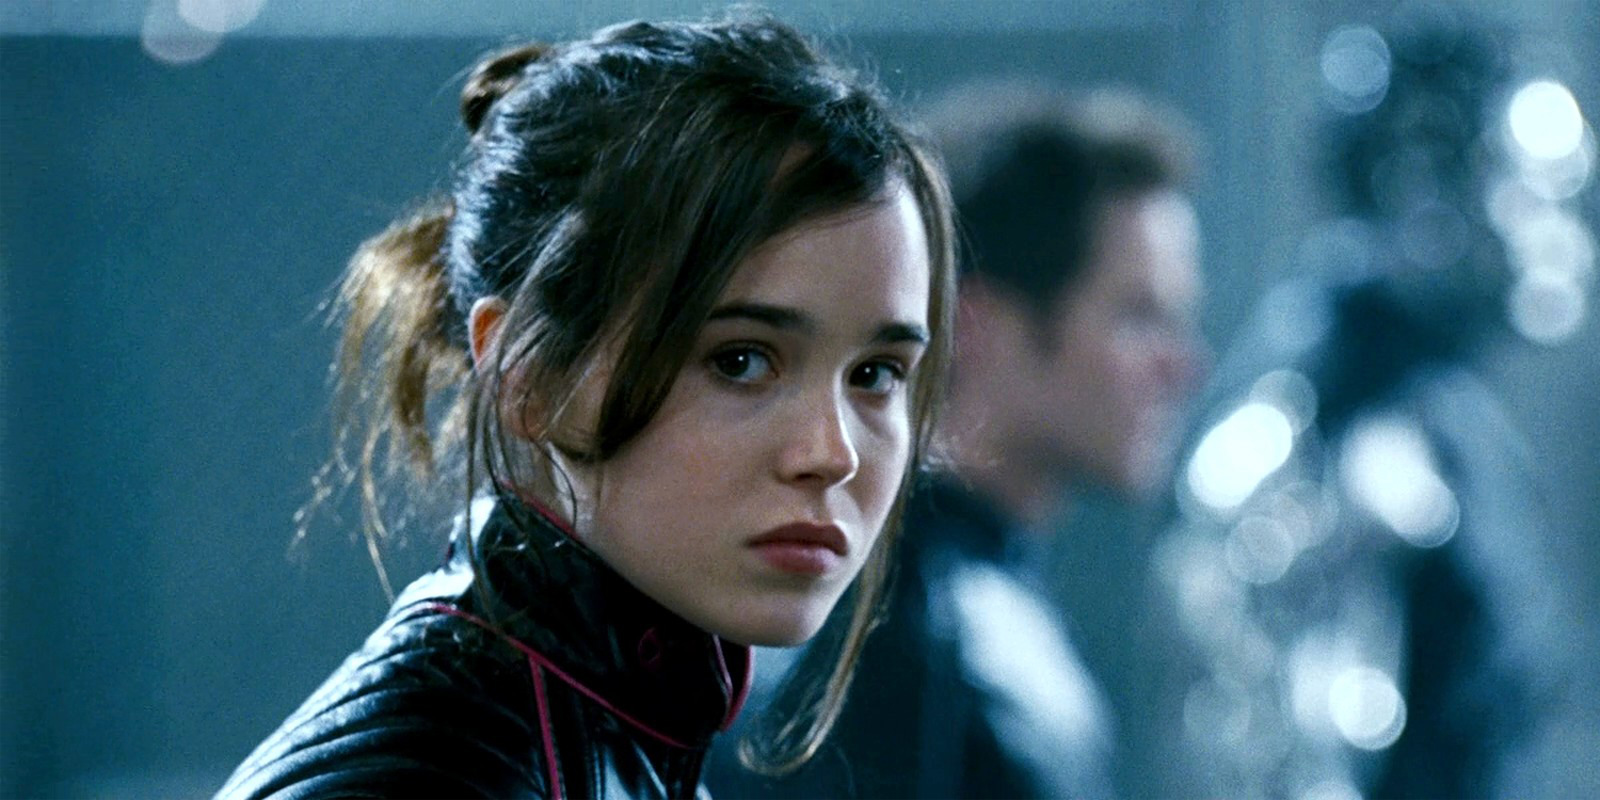 Ellen Page as Kitty Pryde in X-Men: The Last Stand